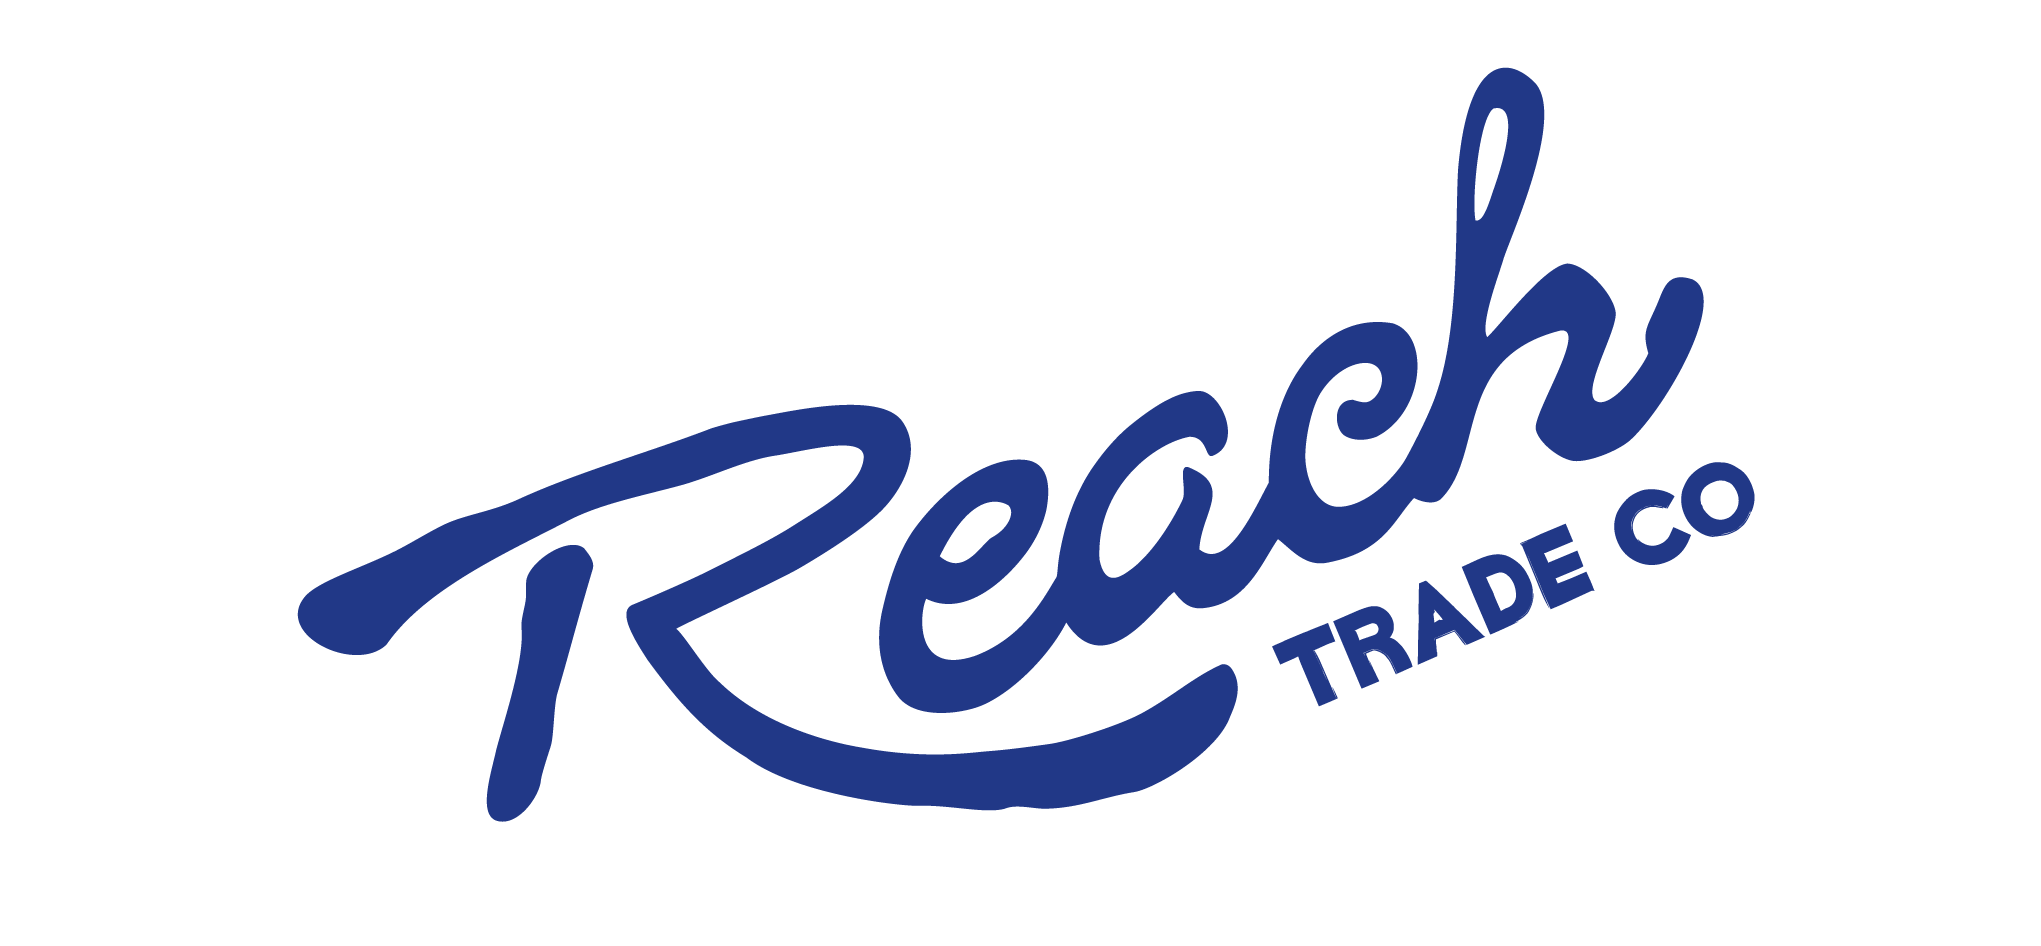 Reach Trade Co. logo design  |  Inspired by drawing with water